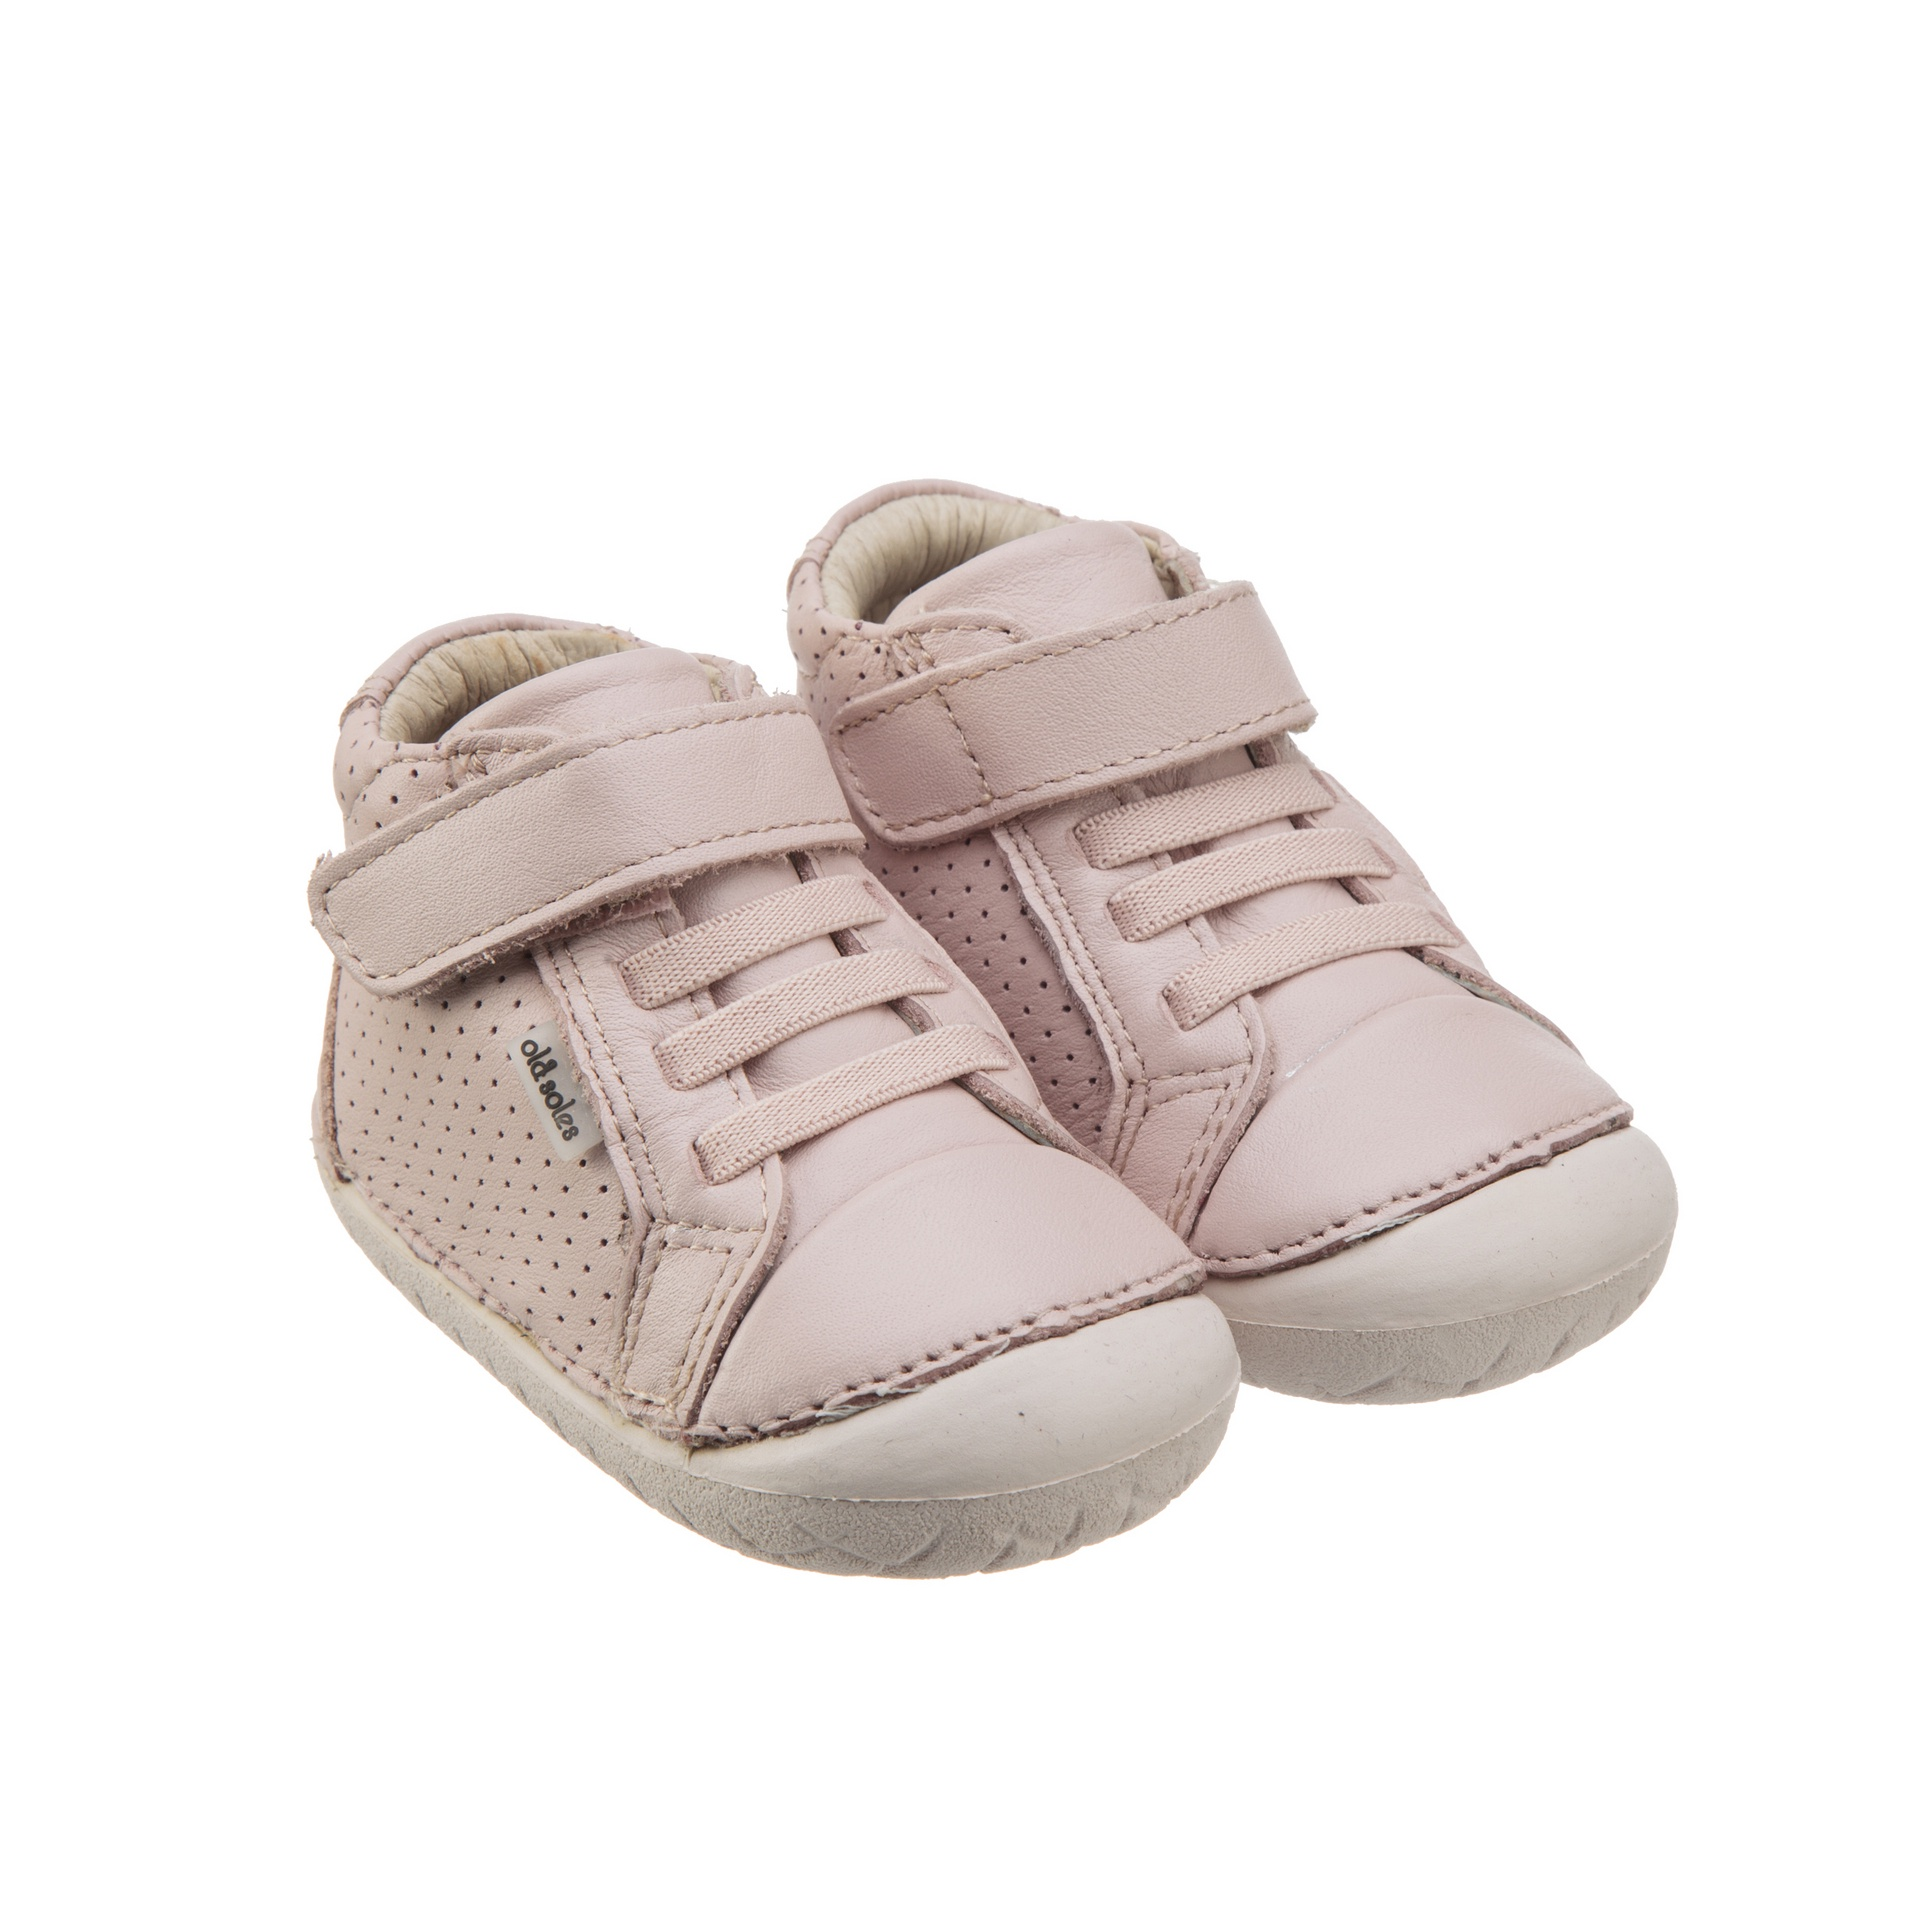 Old Soles Pave Cheer Powder Pink